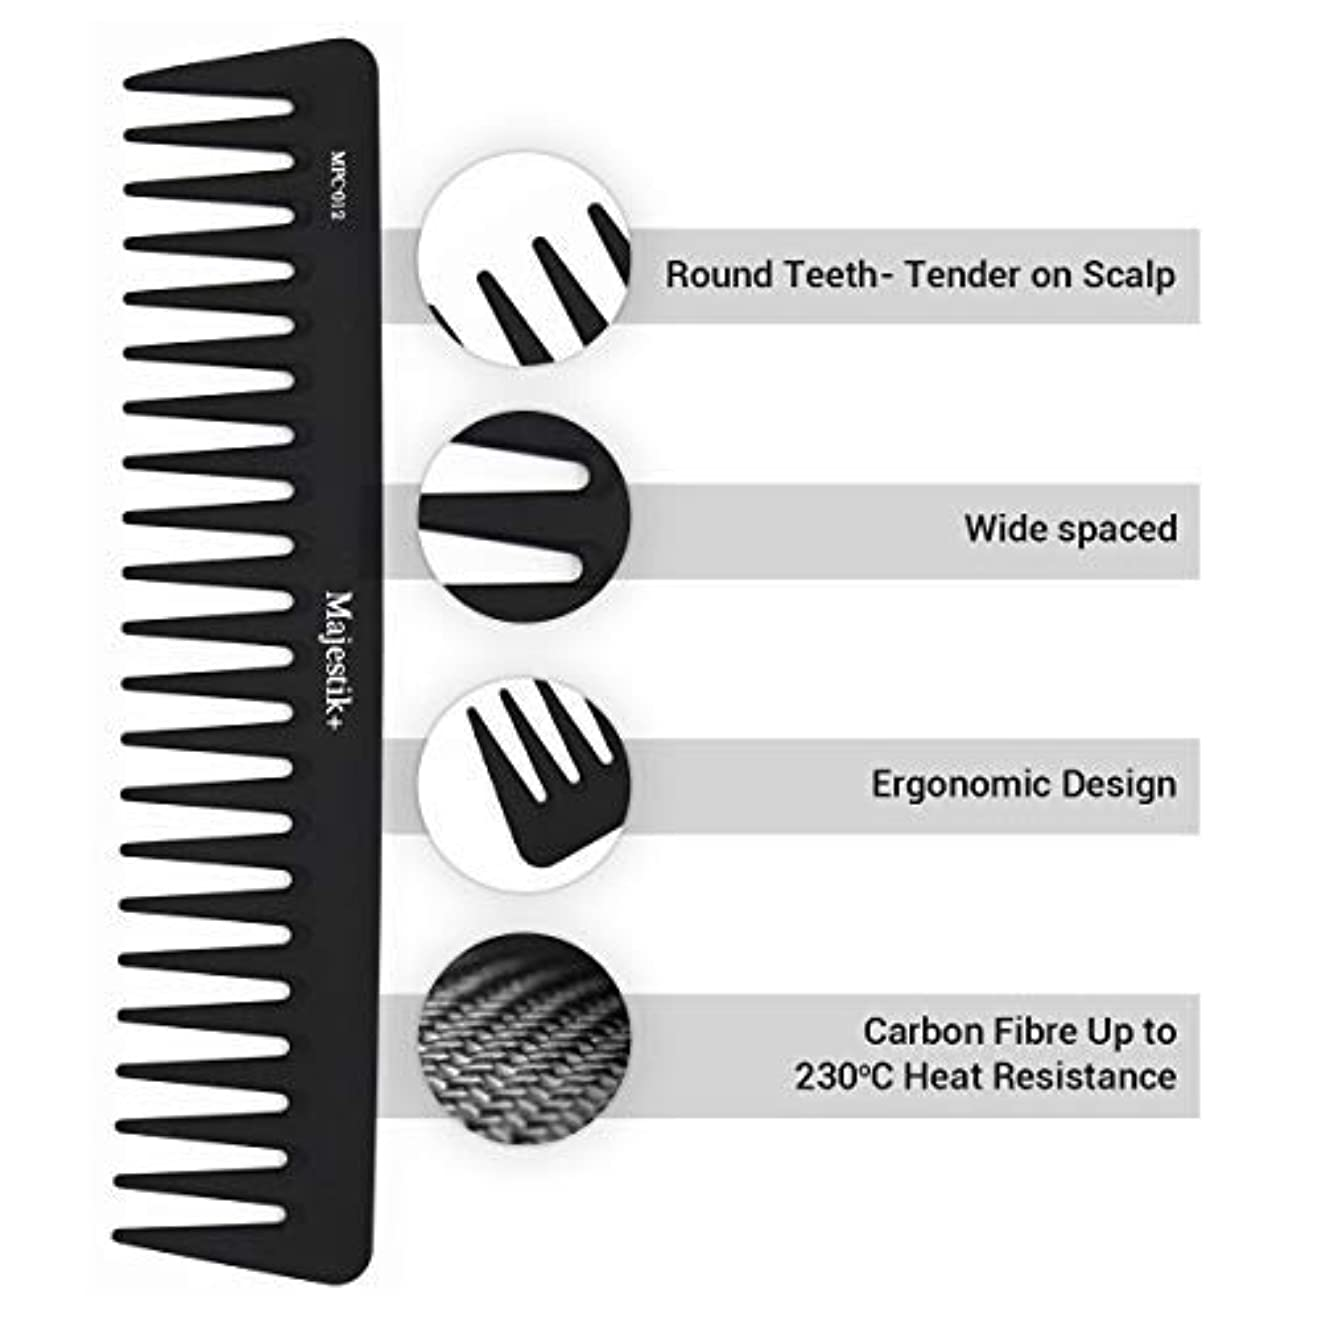 シチリアアーティキュレーションファンシーWide Tooth Comb- a Professional Carbon Fibre Hair Comb by Majestik+, Anti-Static, Strength & Durability, in Black...